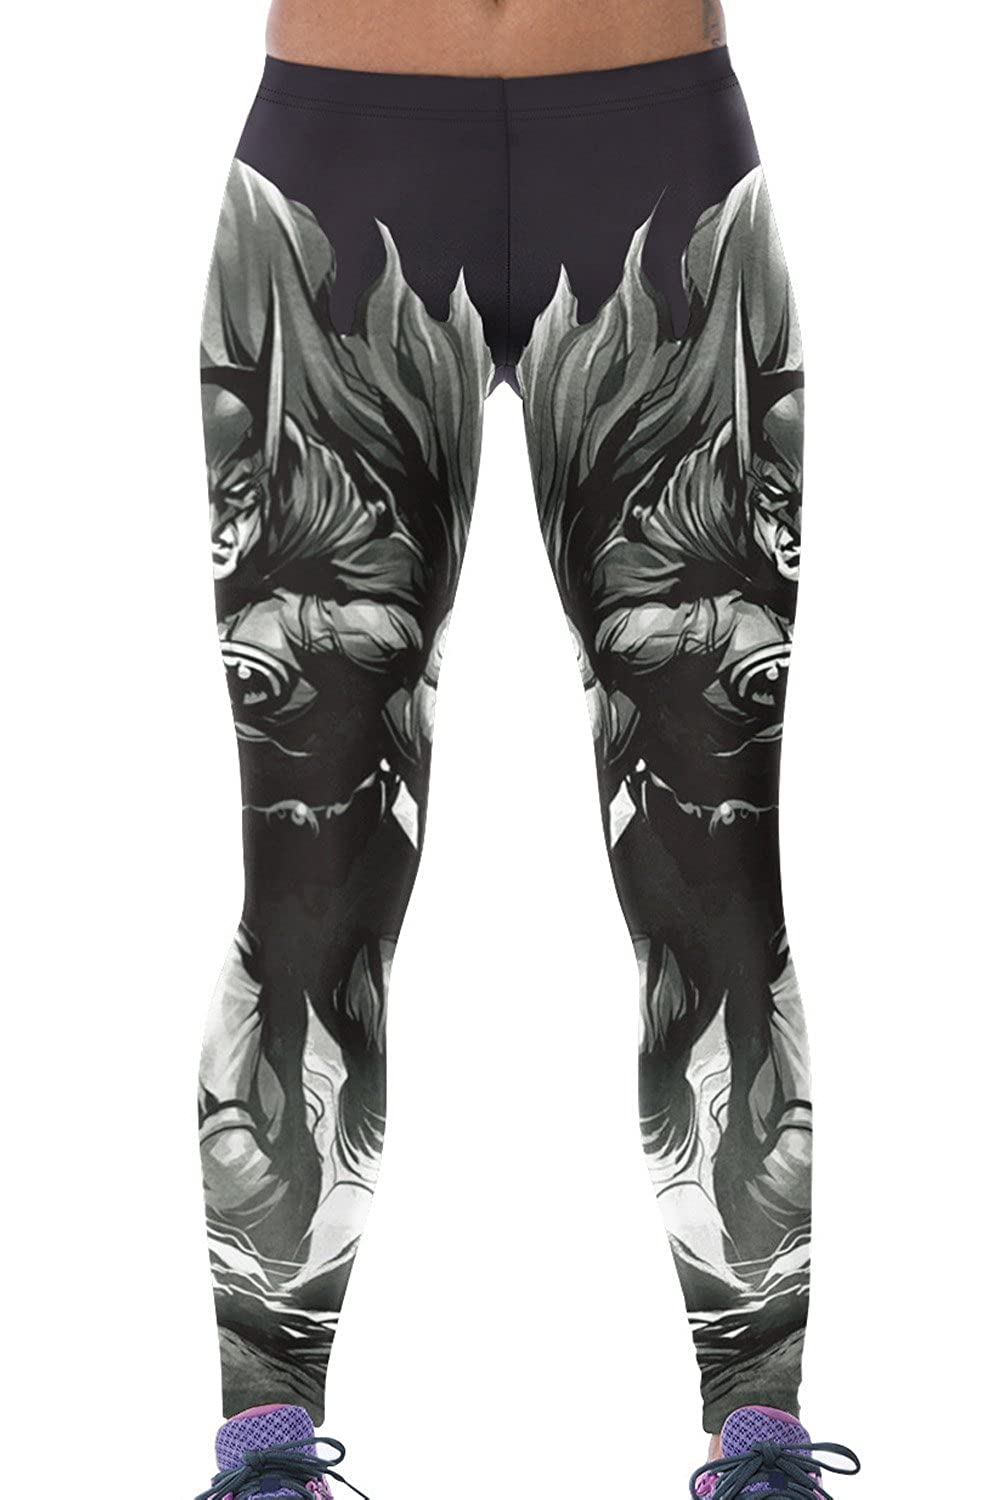 Lady Queen Women's Batman Printed Tight Stretch Sport Legging Pants